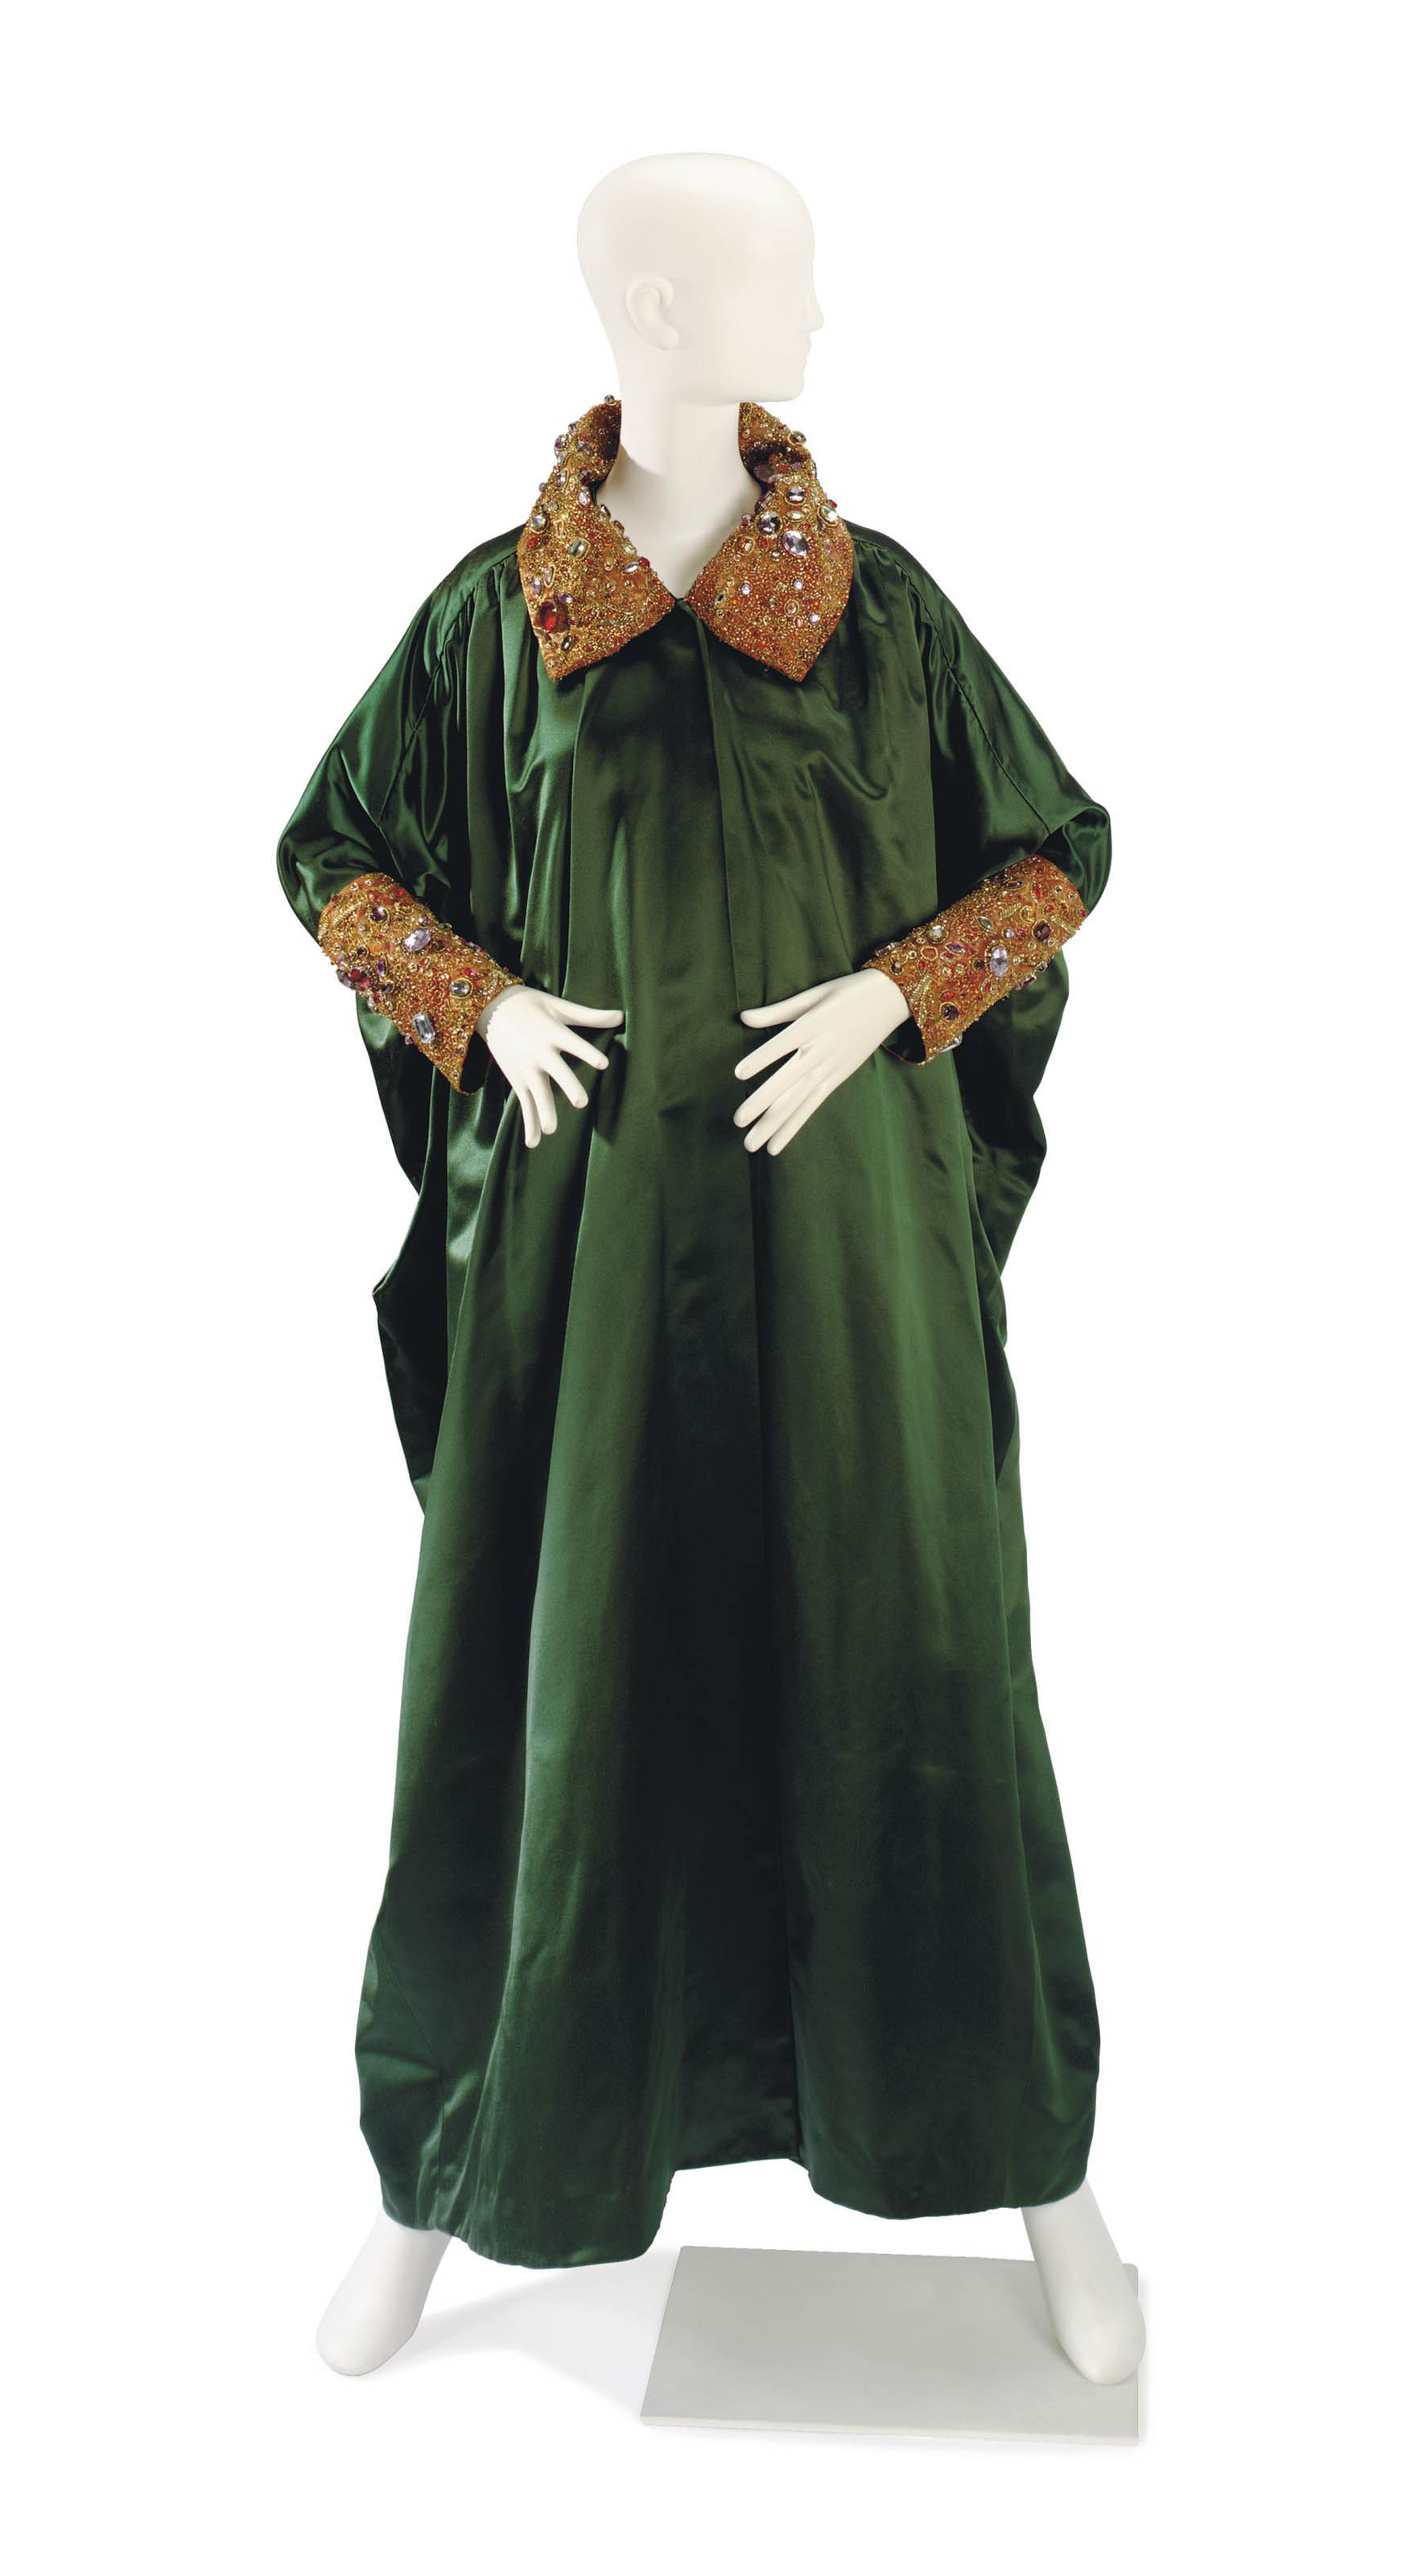 A BILL BLASS EMERALD GREEN SATIN AND RHINESTONE EMBROIDERED EVENING COAT